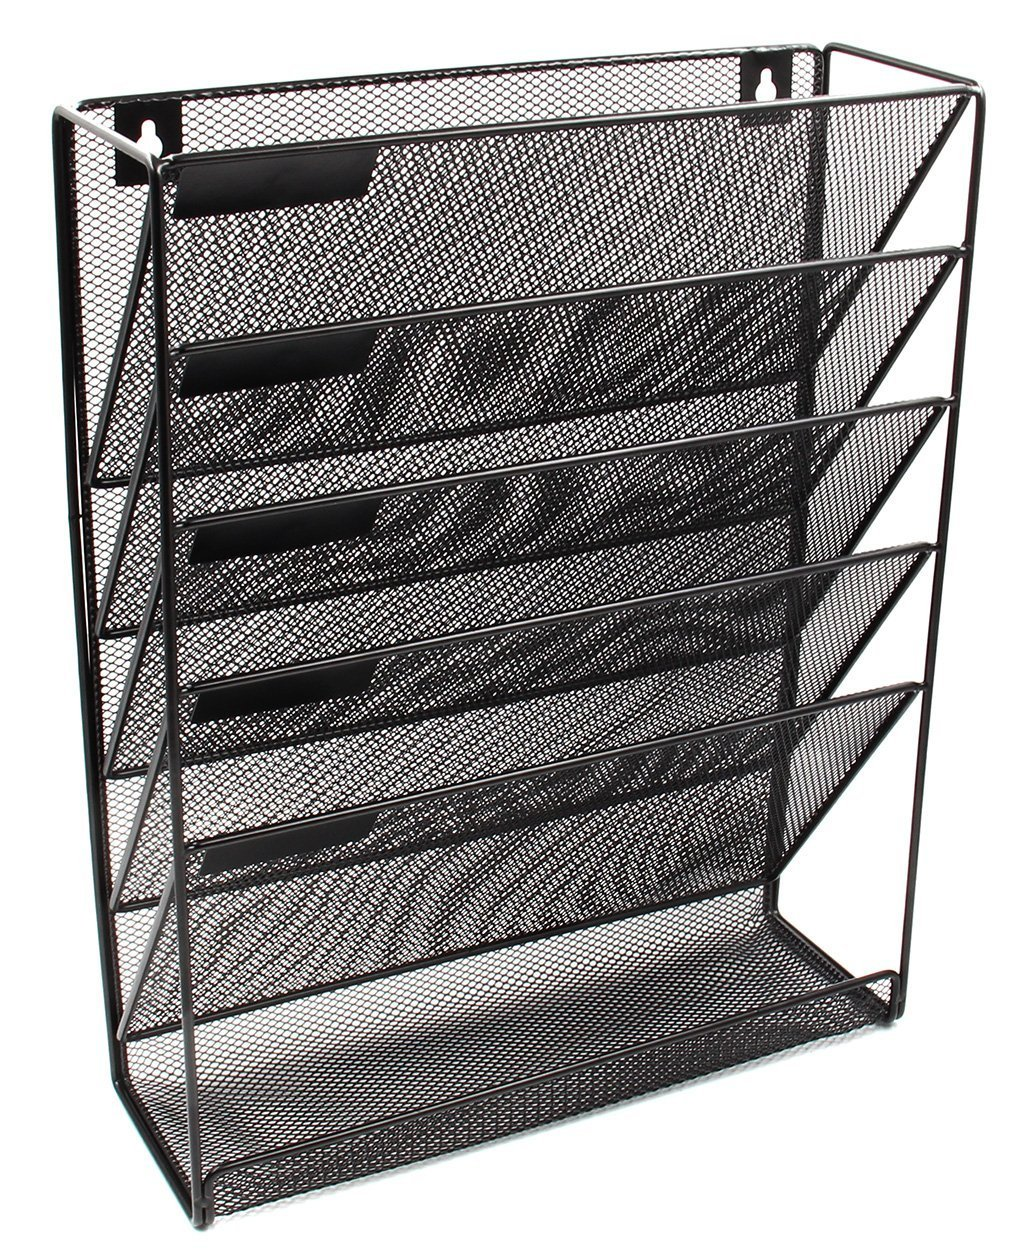 Mesh Wall Mounted 5-Tier File Organizer Black Hanging File Organizer Vertical Holder for Office Home